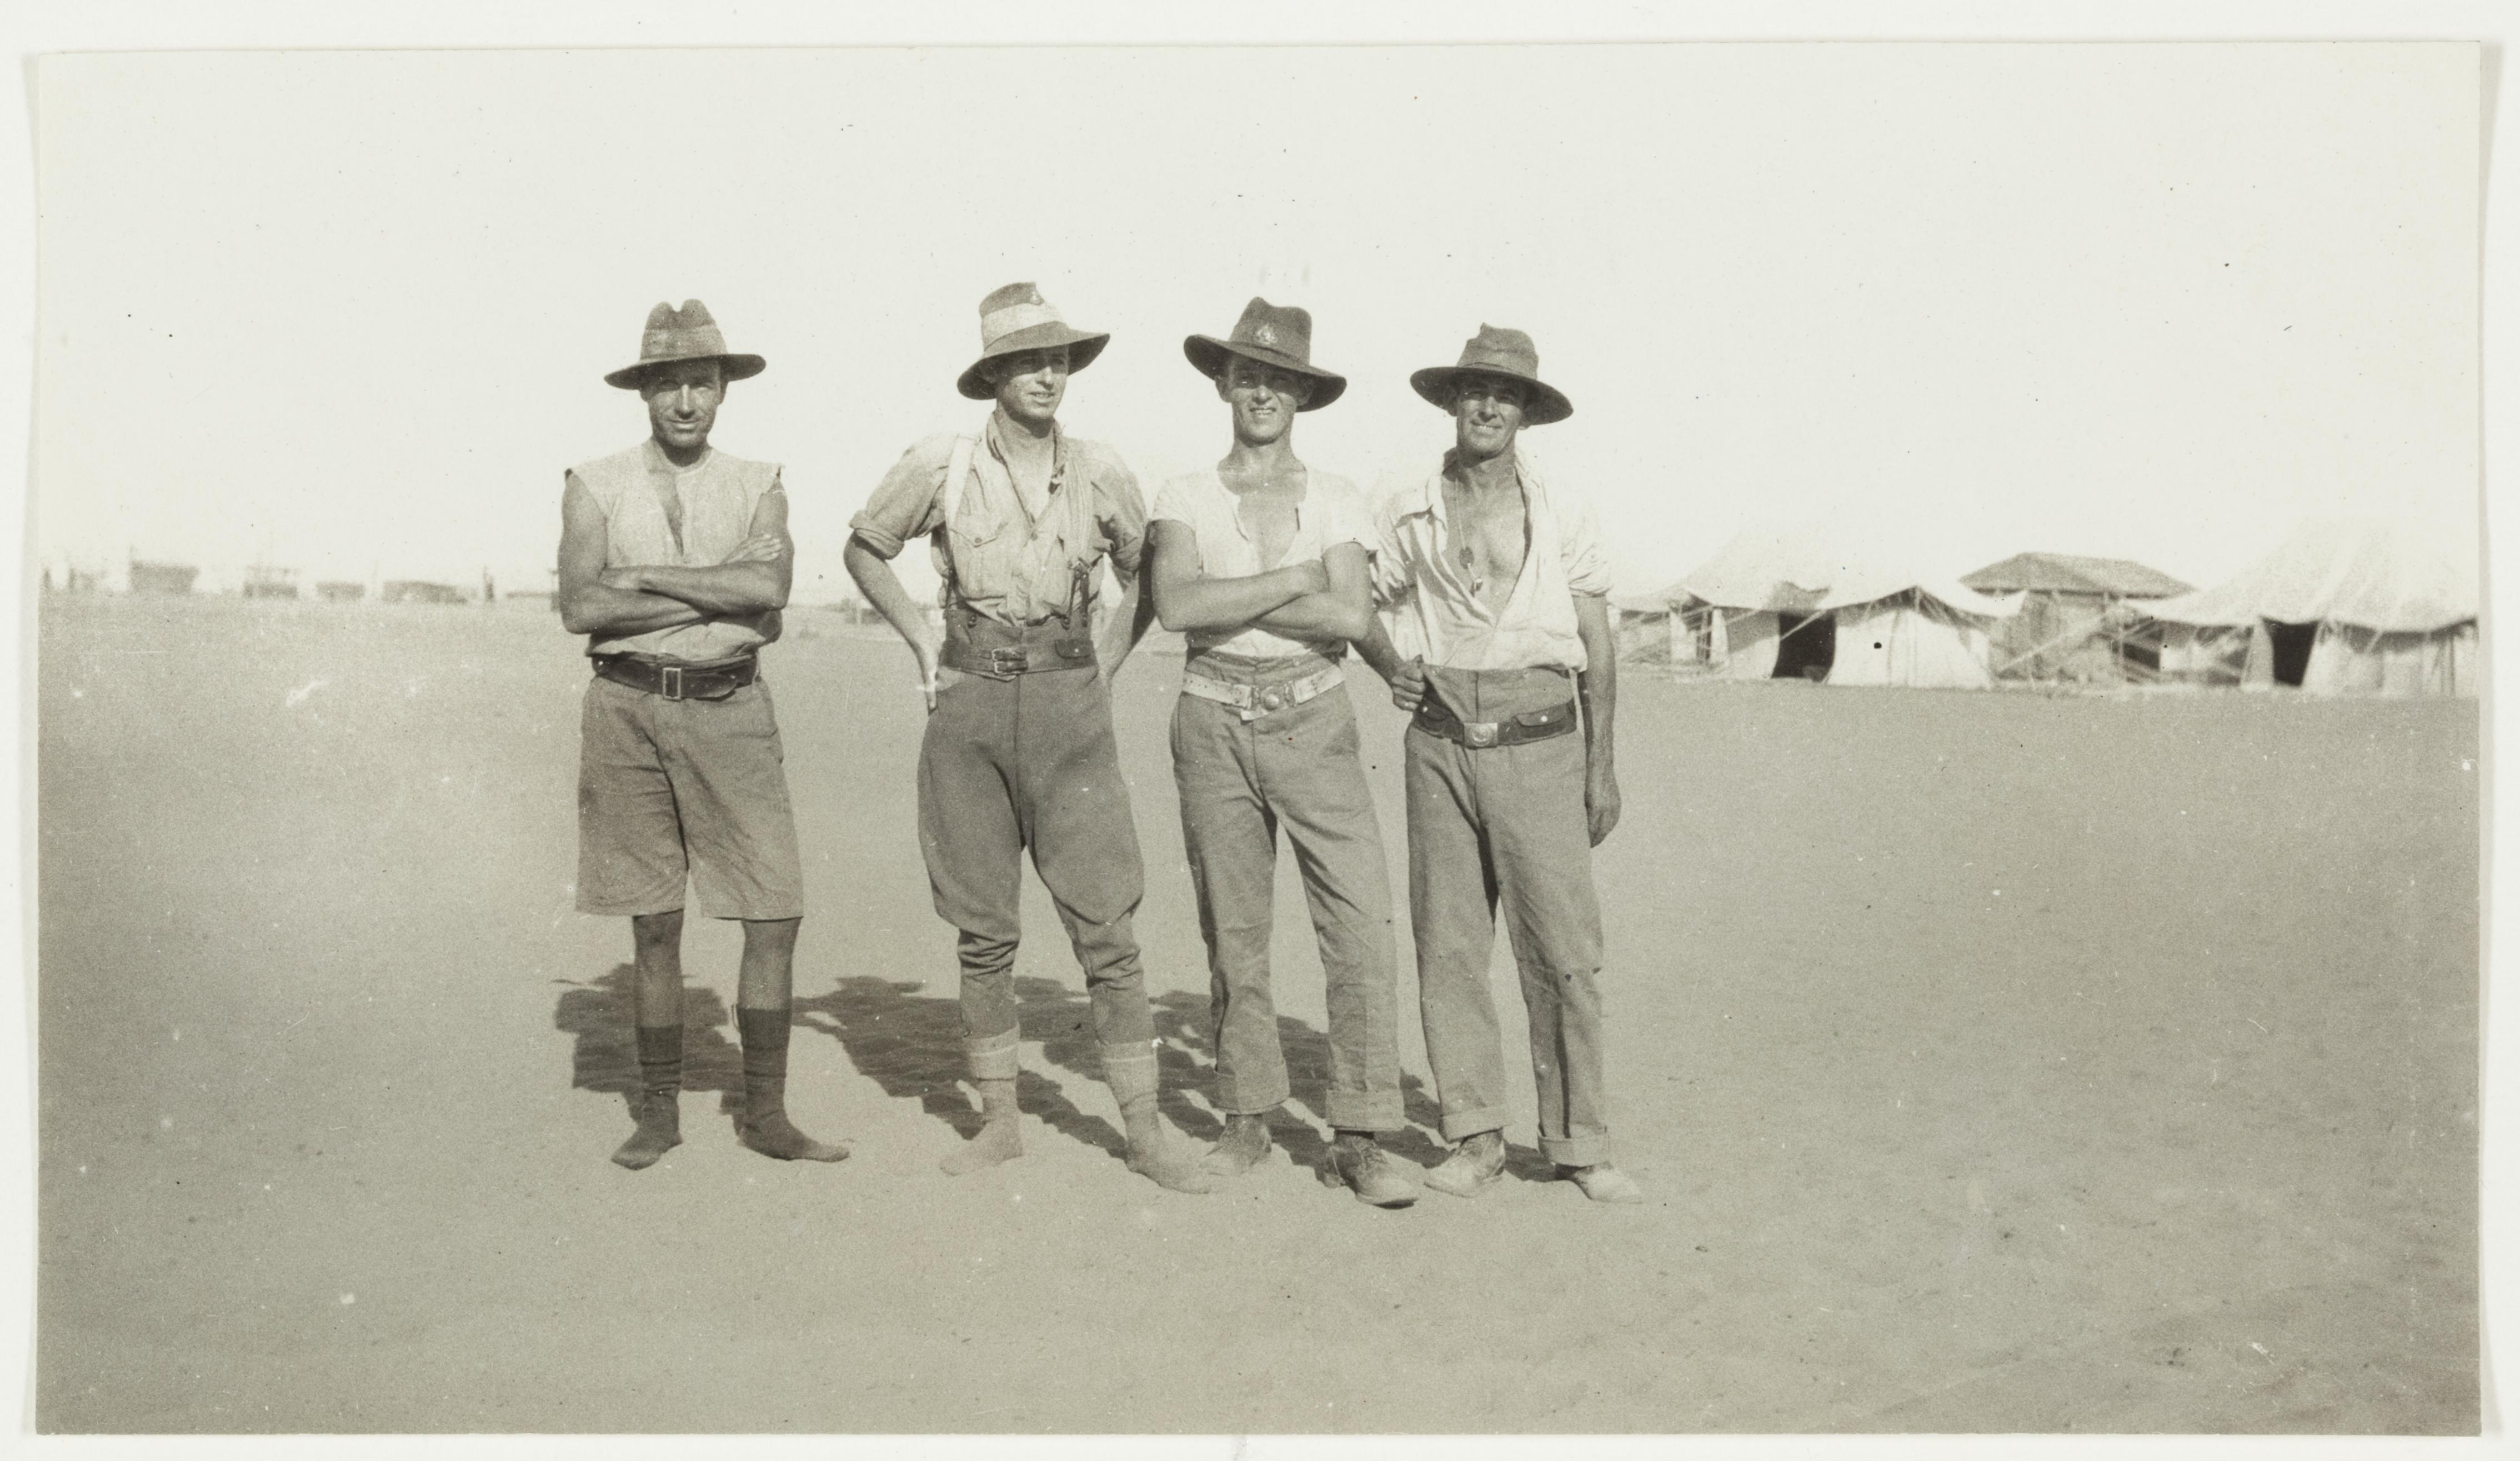 Trooper Finnichie and his mates, 2nd Brigade, 6th Light Horse  by J.F. Smith of the 7th Light Horse in Egypt and Palestine, c. 1914-1918